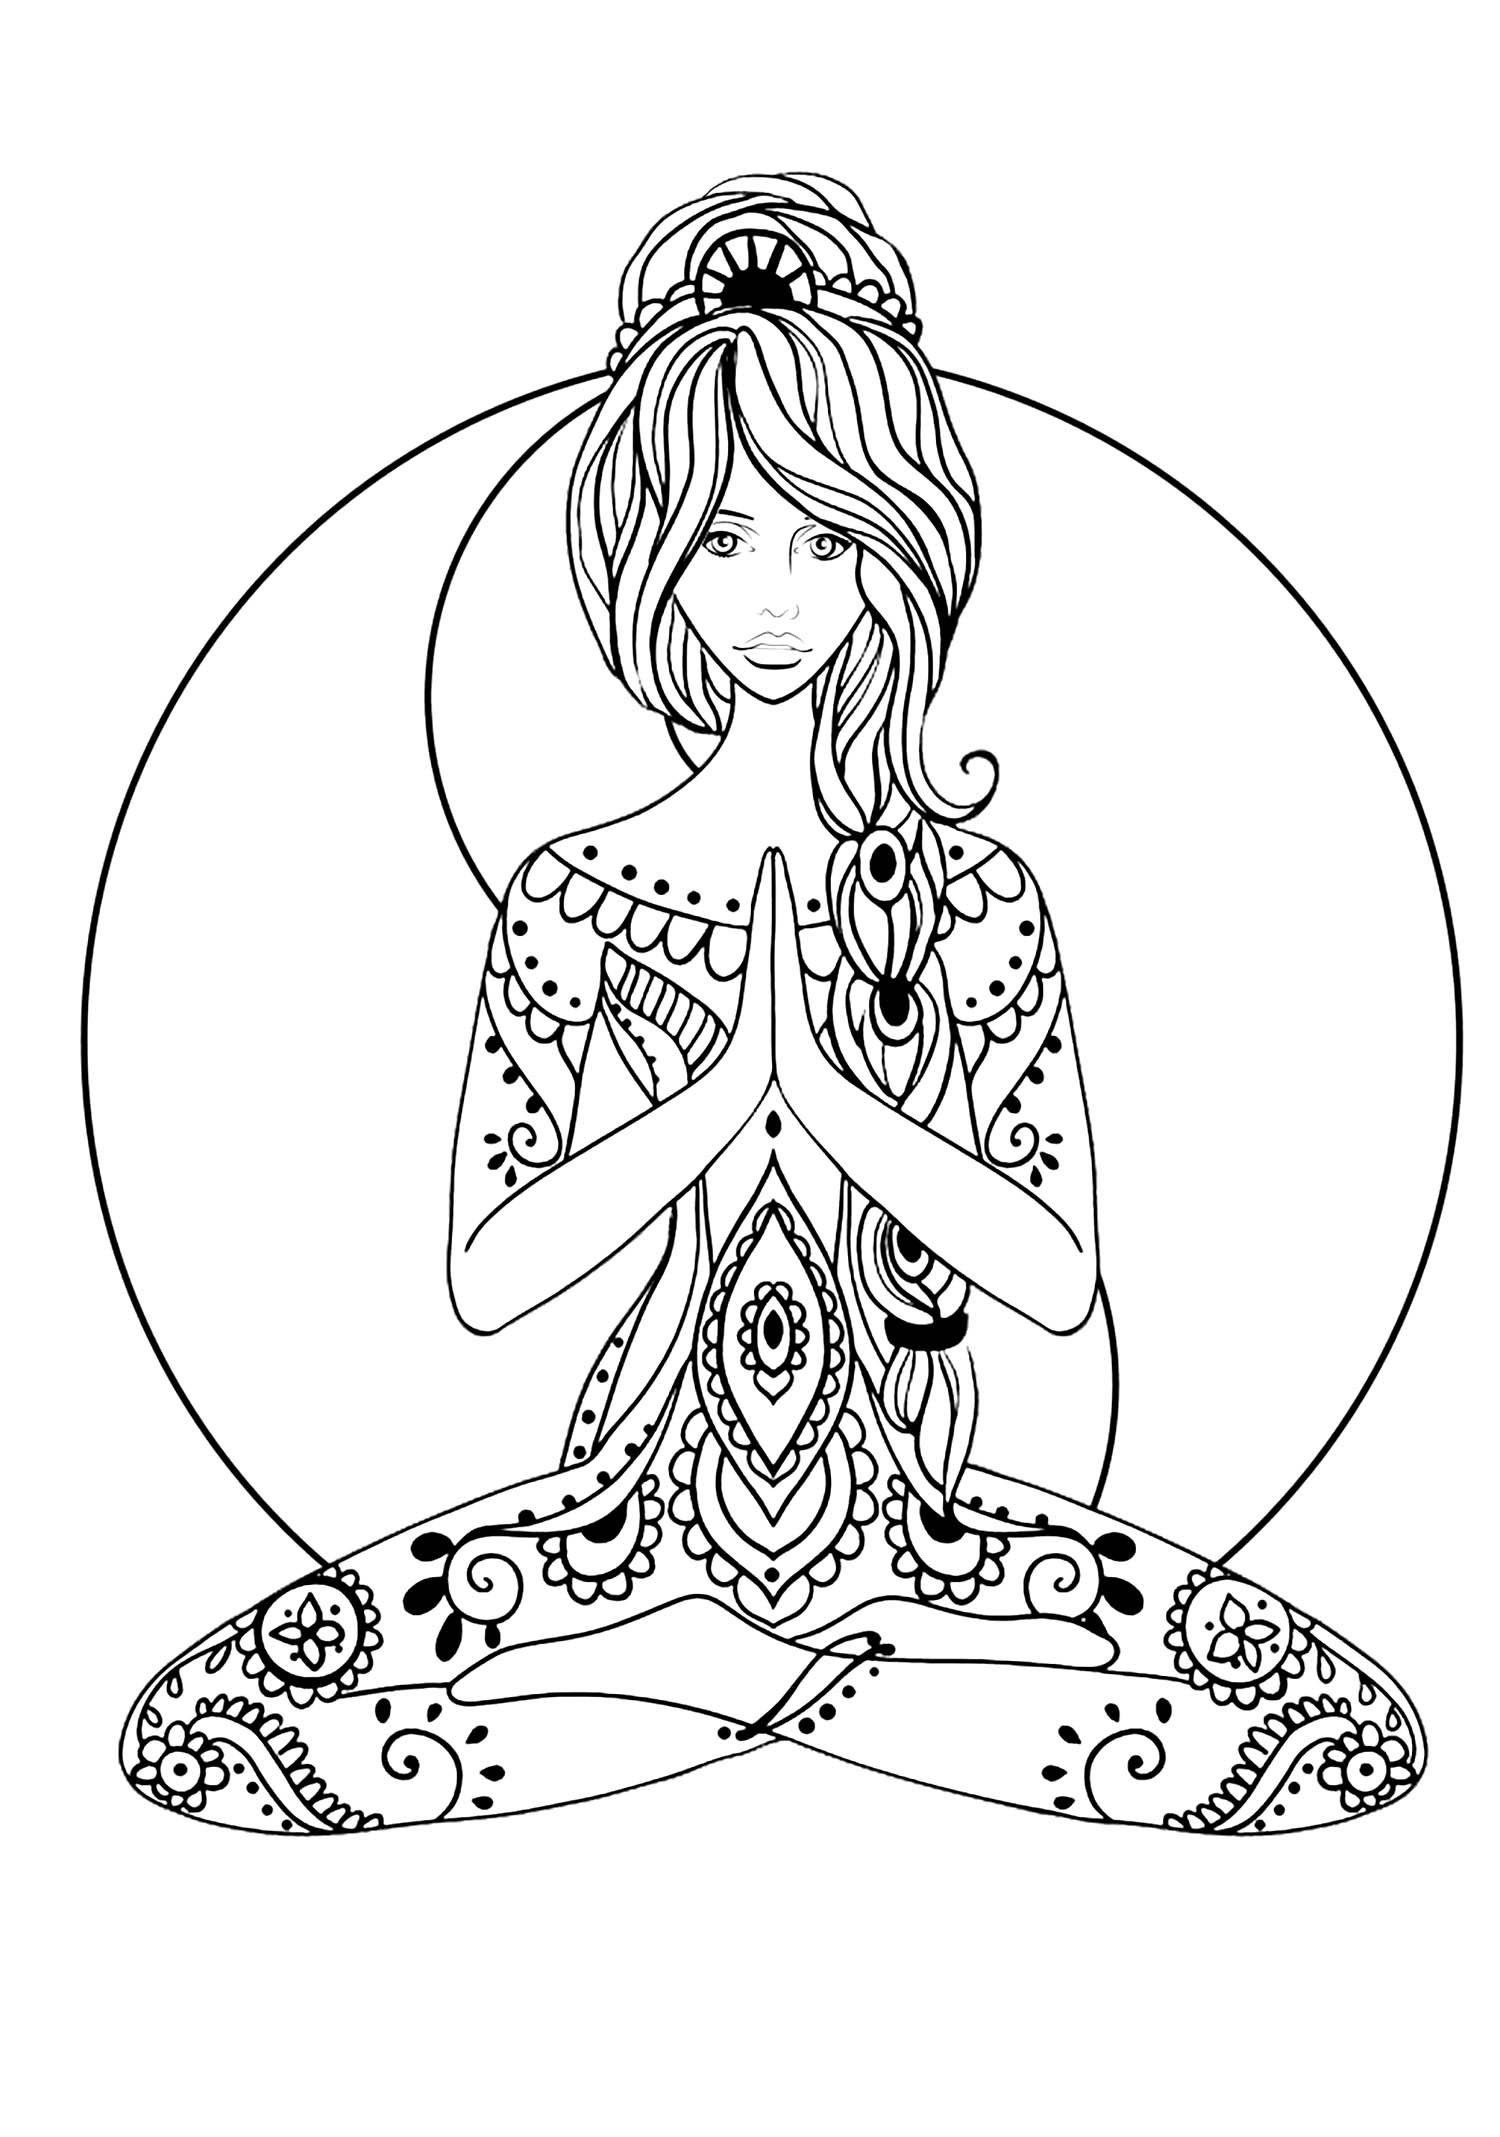 Yoga Zen And Anti Stress Coloring Pages For Adults Just Color